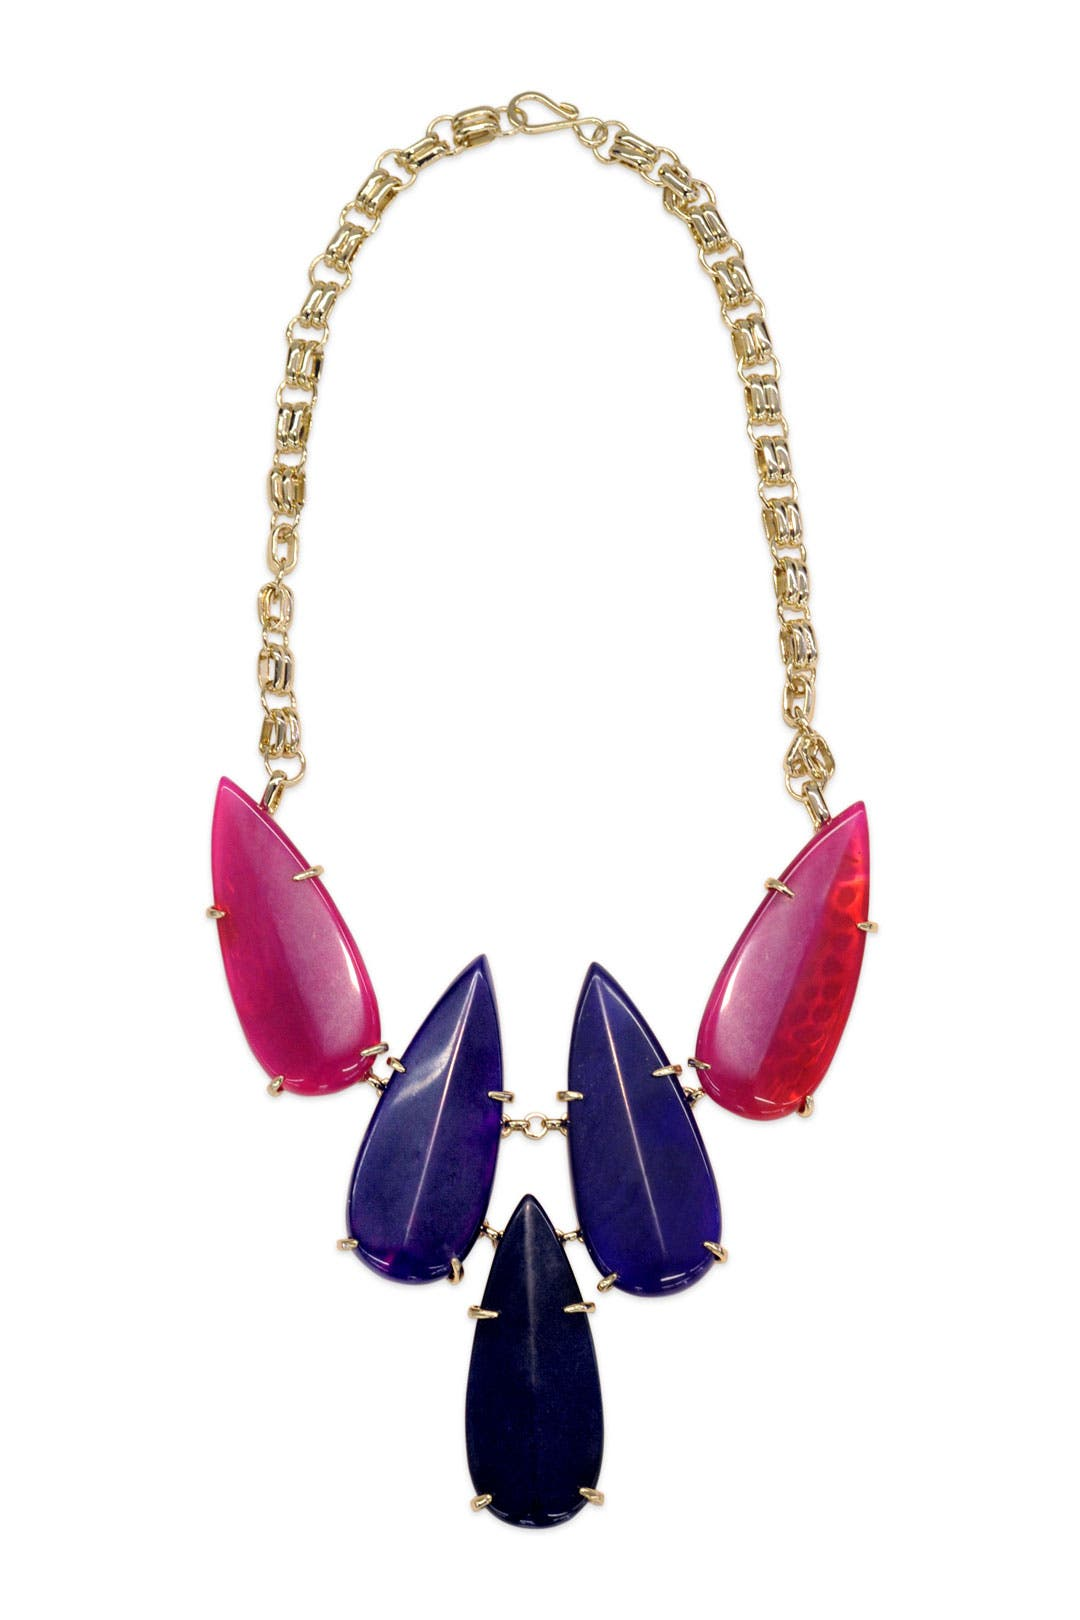 Violet Jasmine Necklace by Kendra Scott